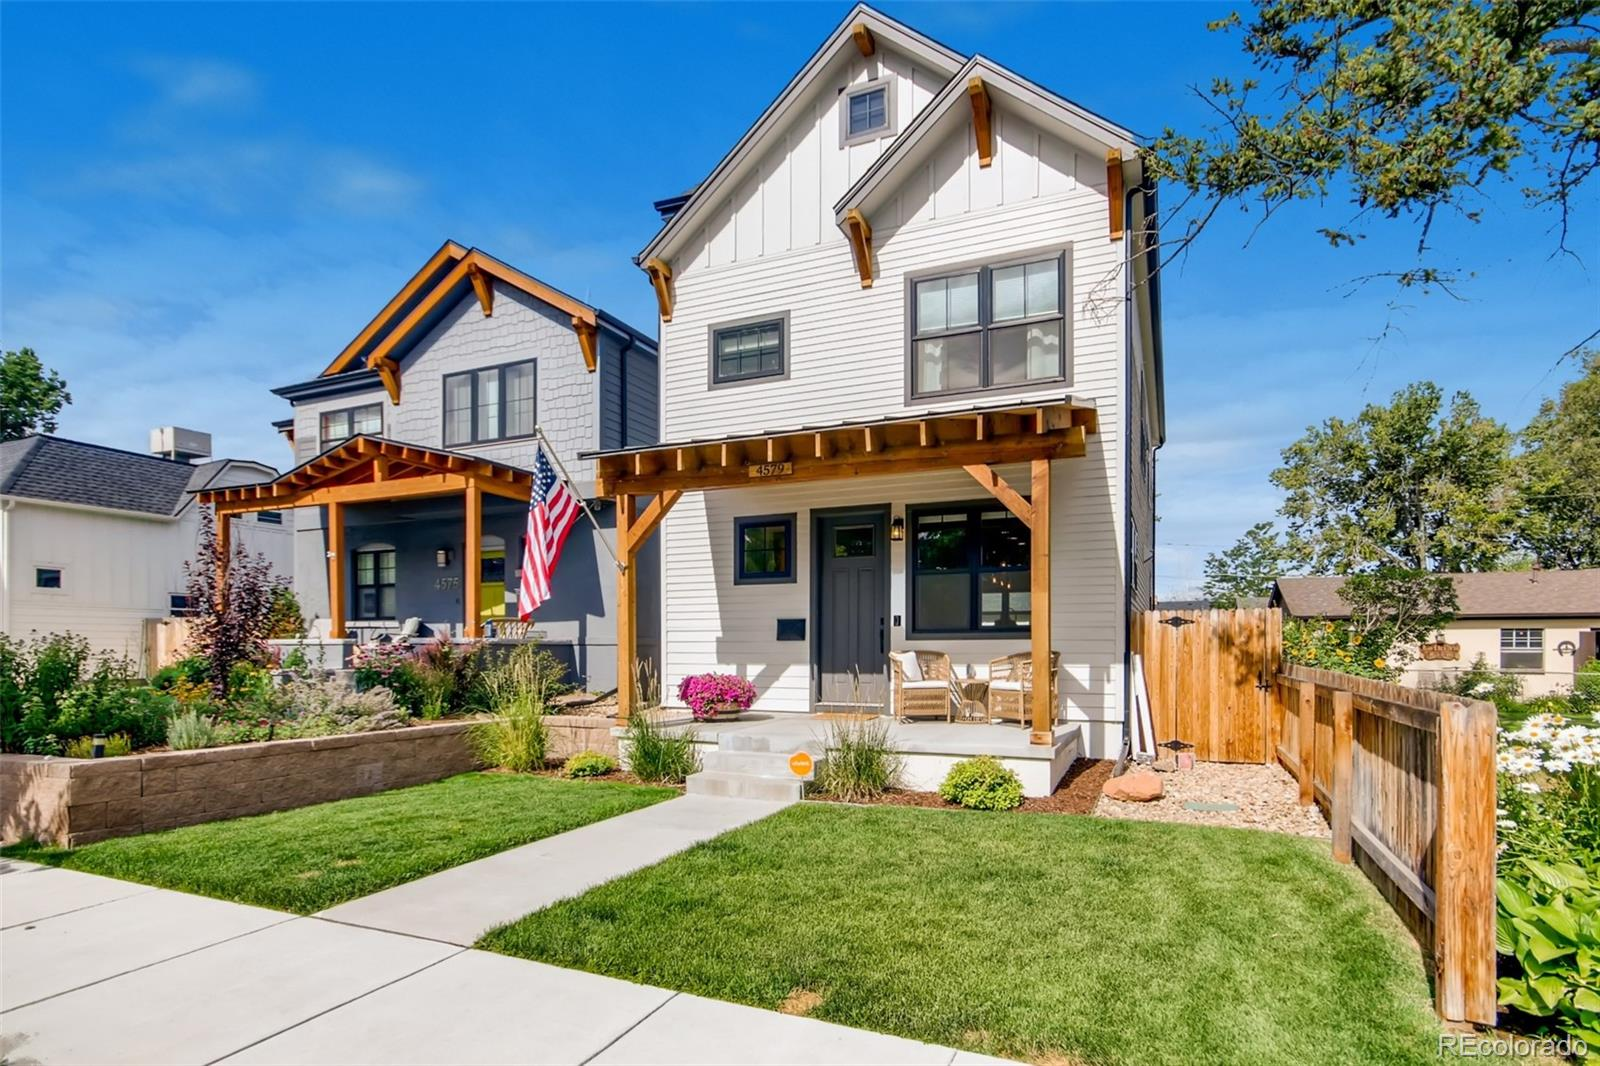 MLS# 7320959 - 1 - 4579 Vrain Street, Denver, CO 80212